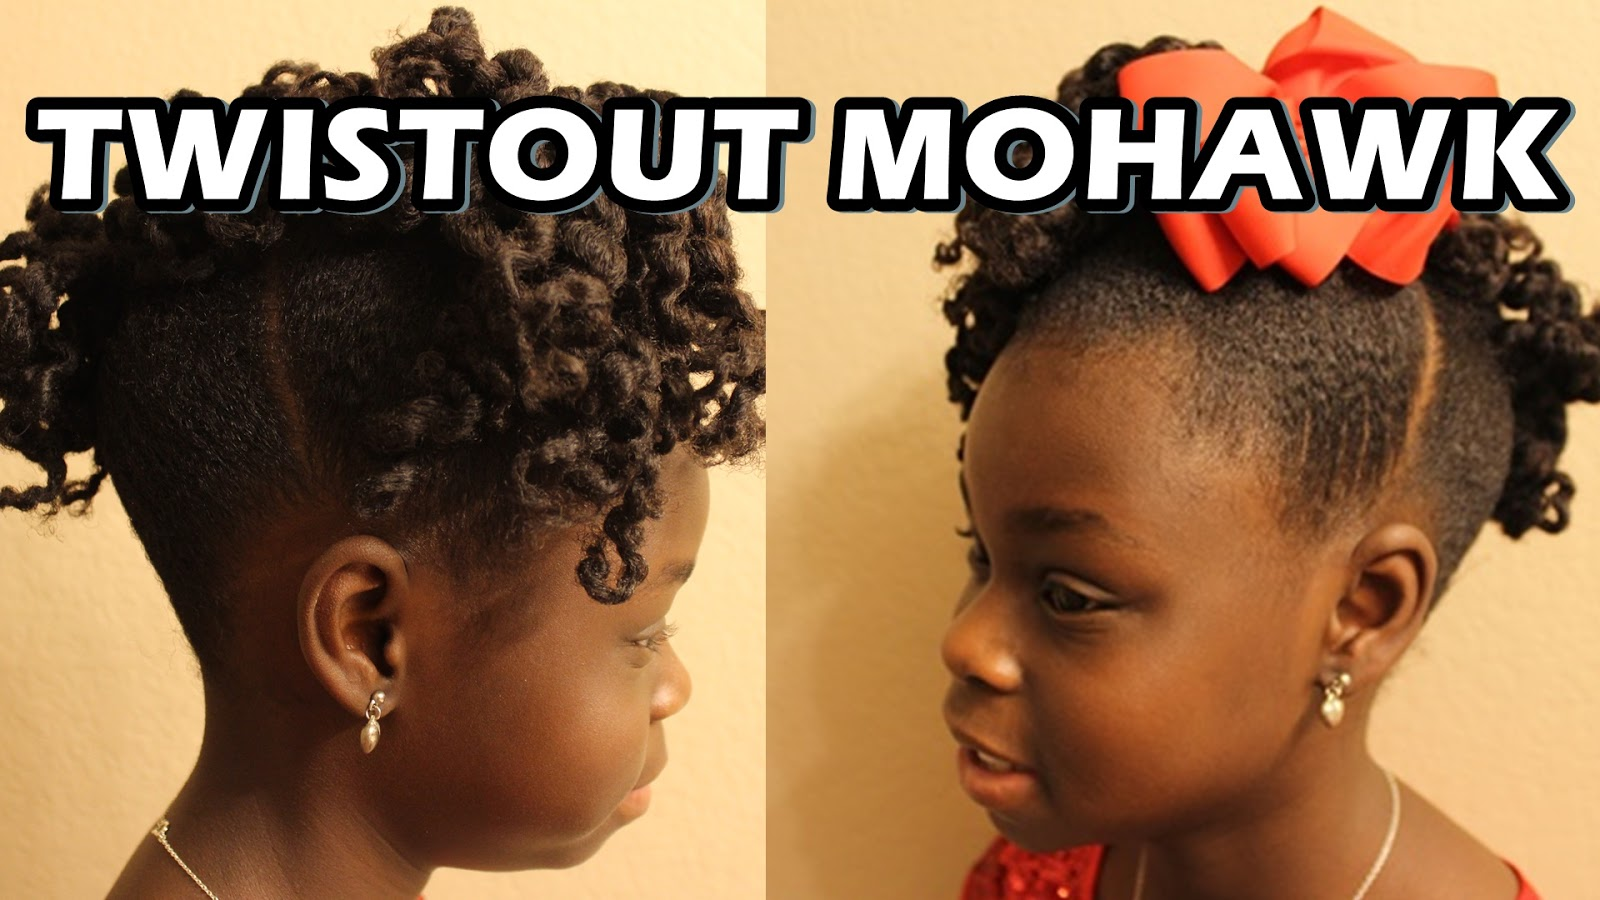 African naturalistas how to style your natural hair mohawk - How To Do A Twistout Mohawk On Natural Hair